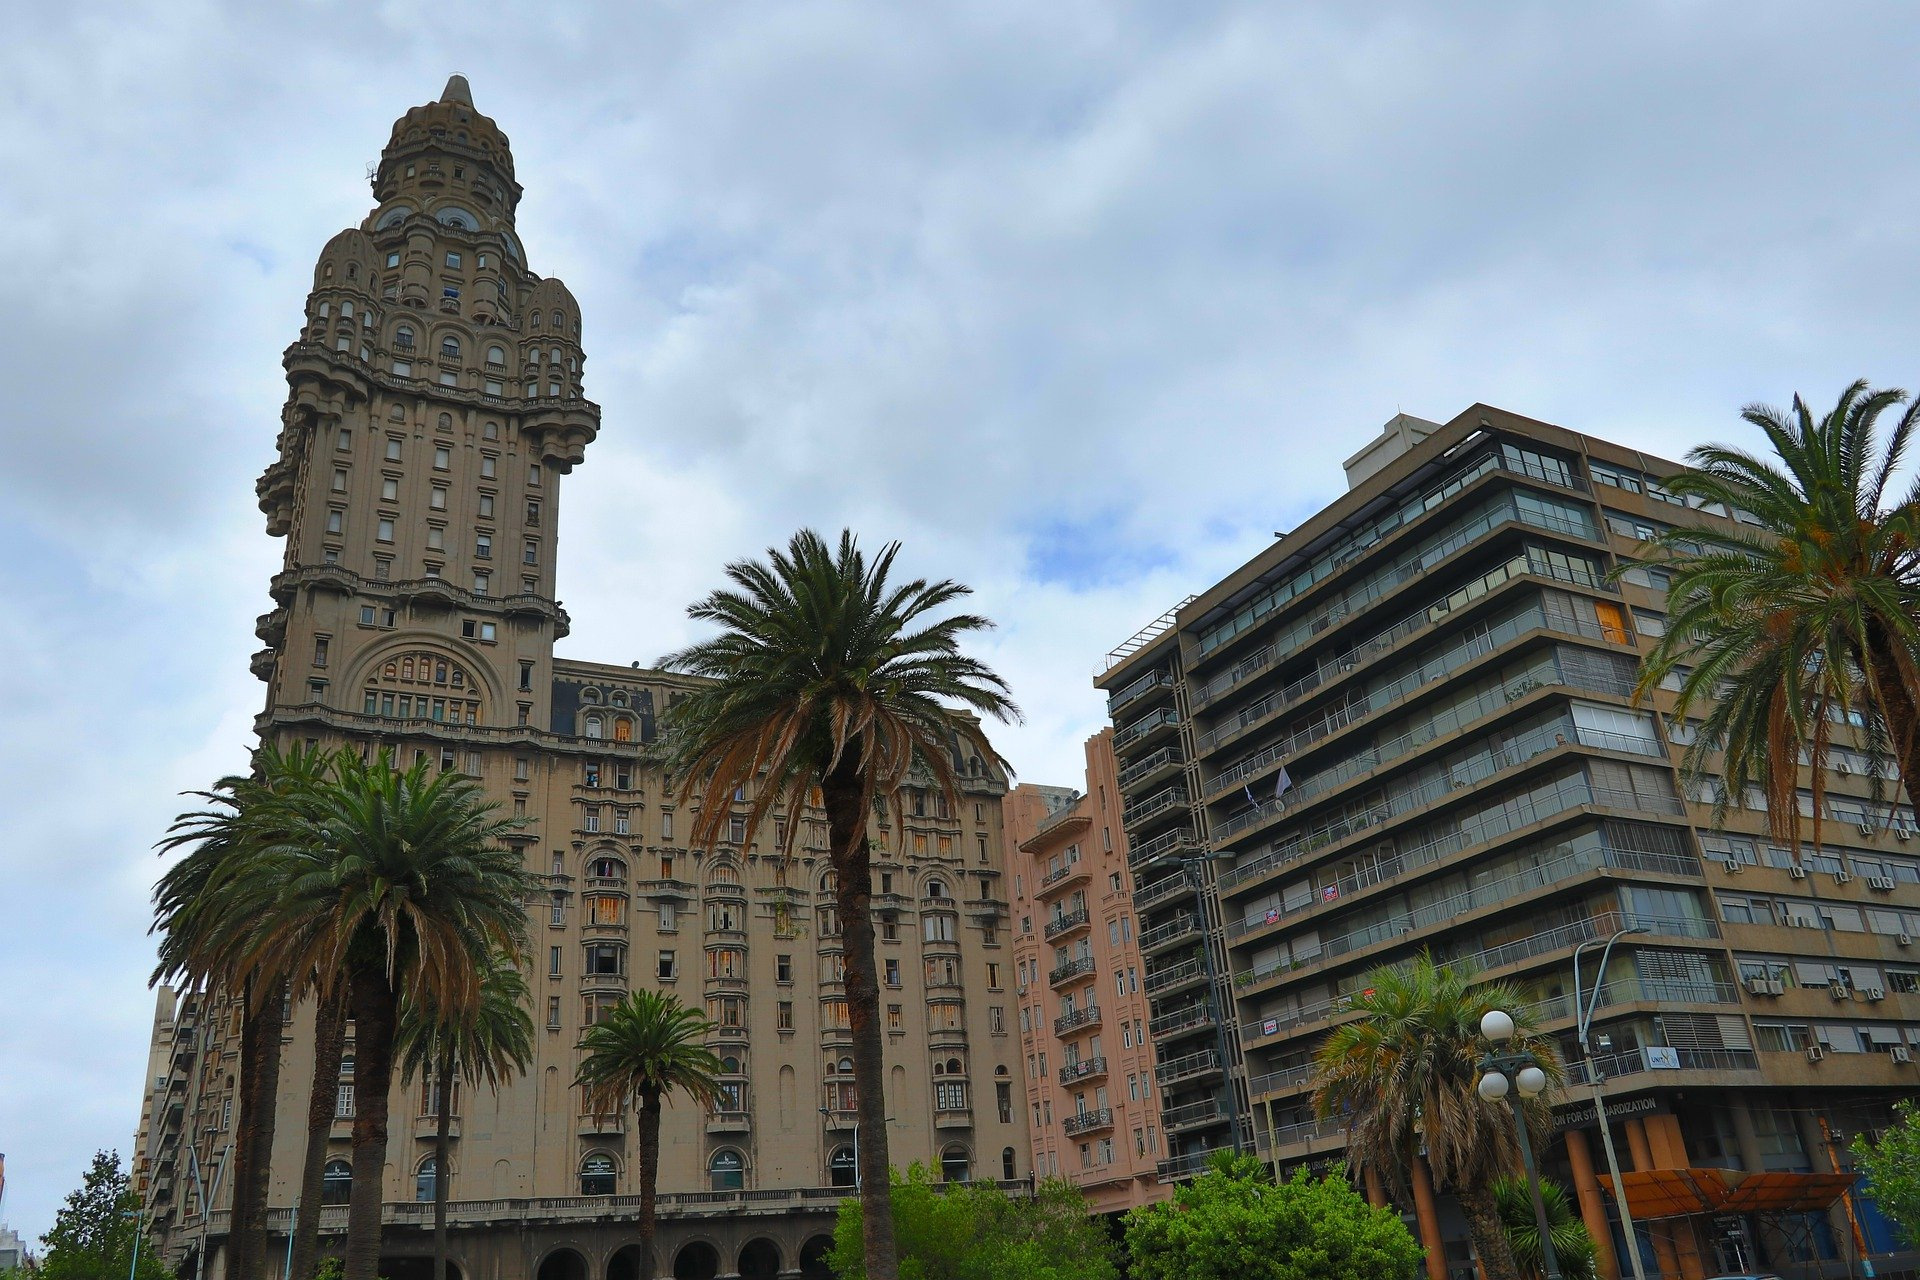 The Palacio Salvo in the Old Town of Montevideo